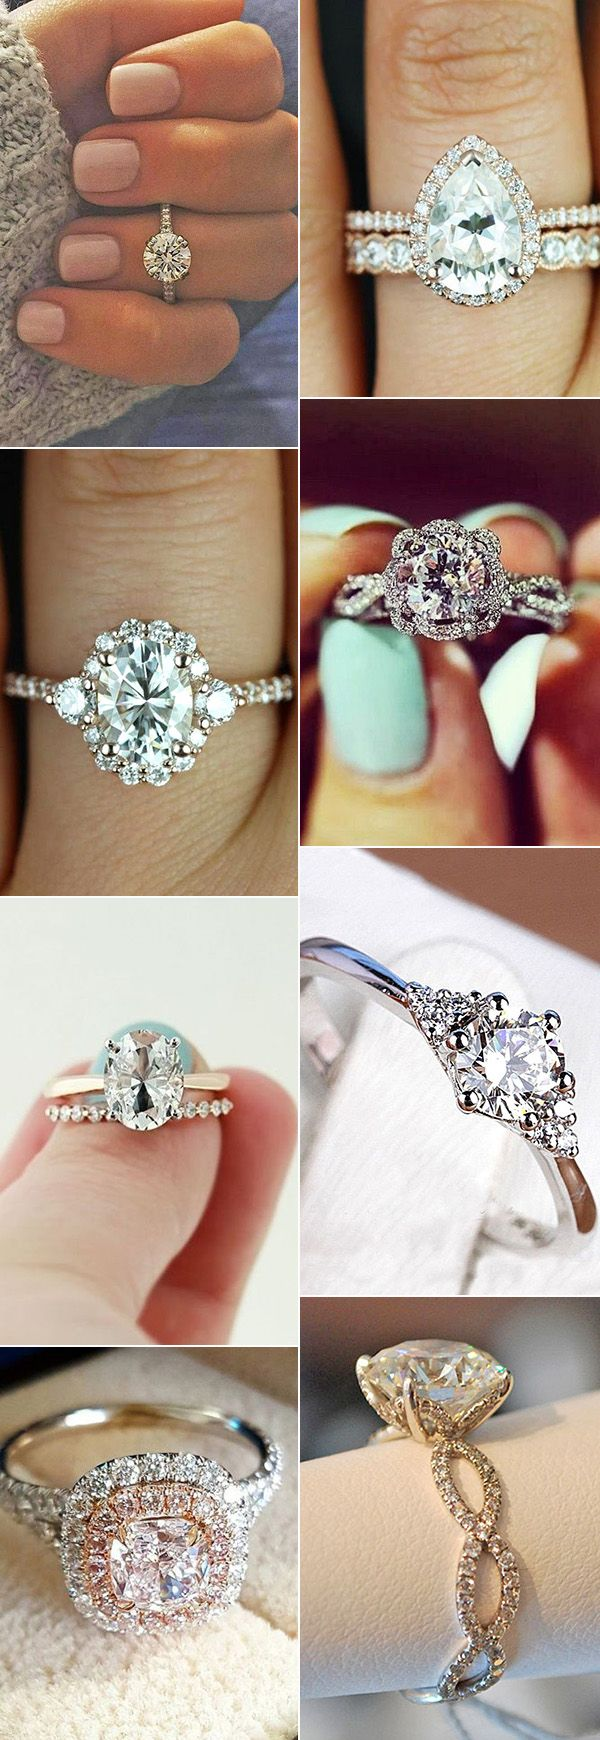 20 Amazing Wedding Engagement Rings For 2017 Trends